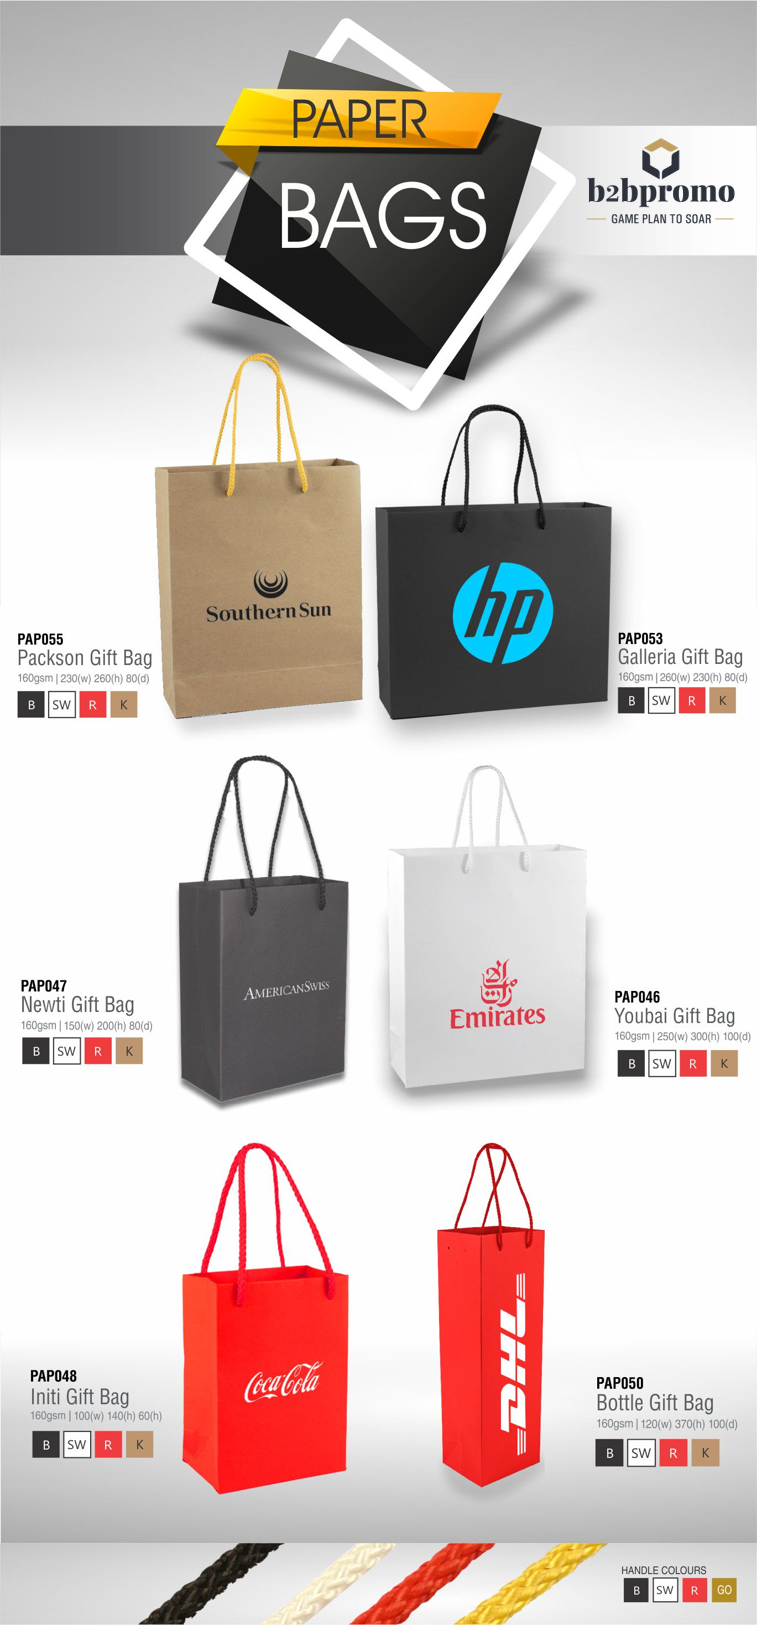 Add a touch of class to your year end gifts with branded Gift bags